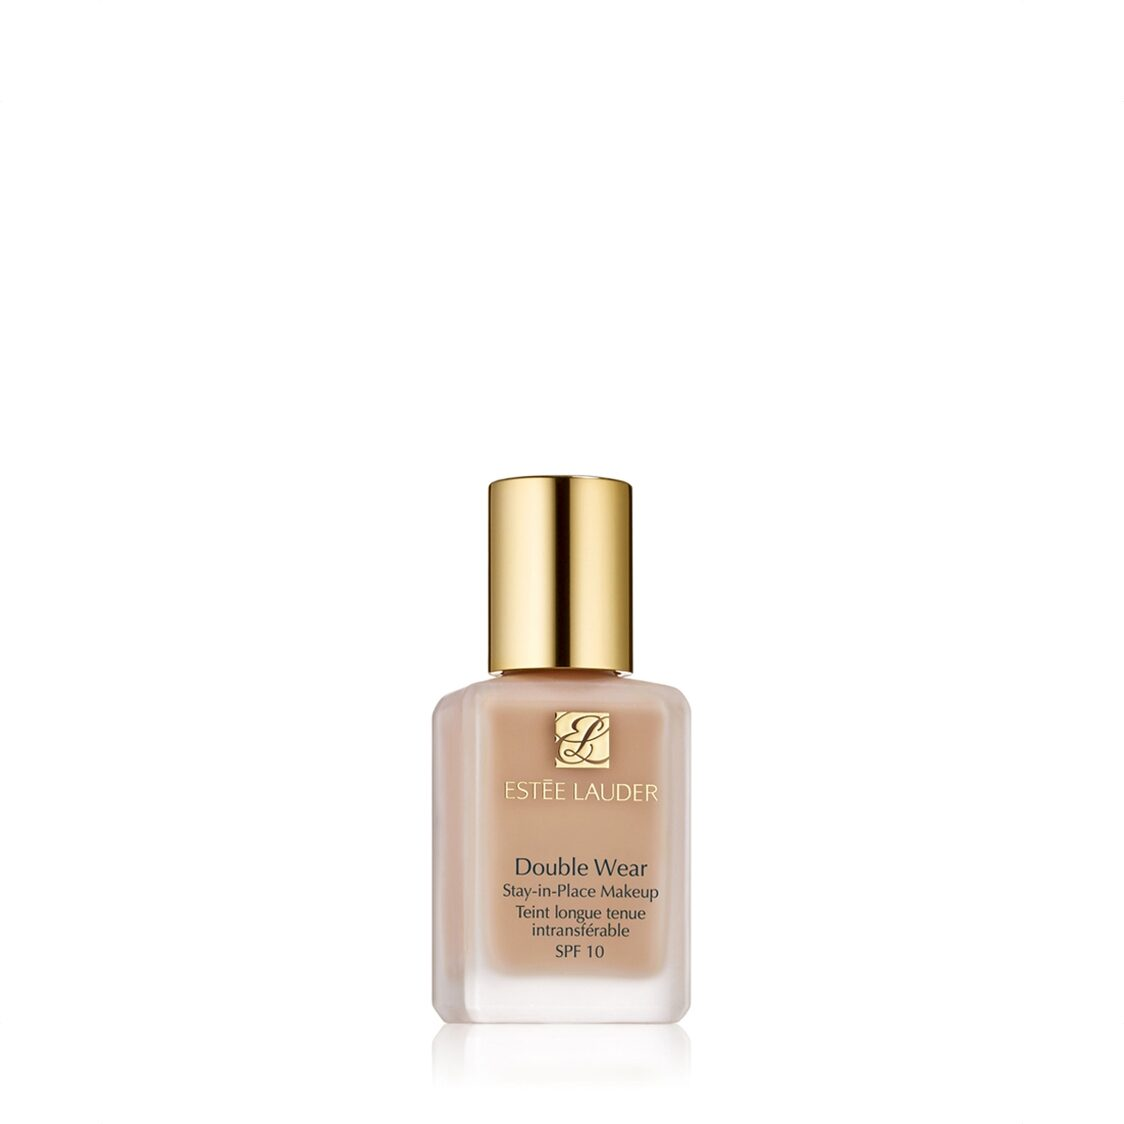 Estee Lauder Double Wear Stay-In-Place Makeup SPF 10PA